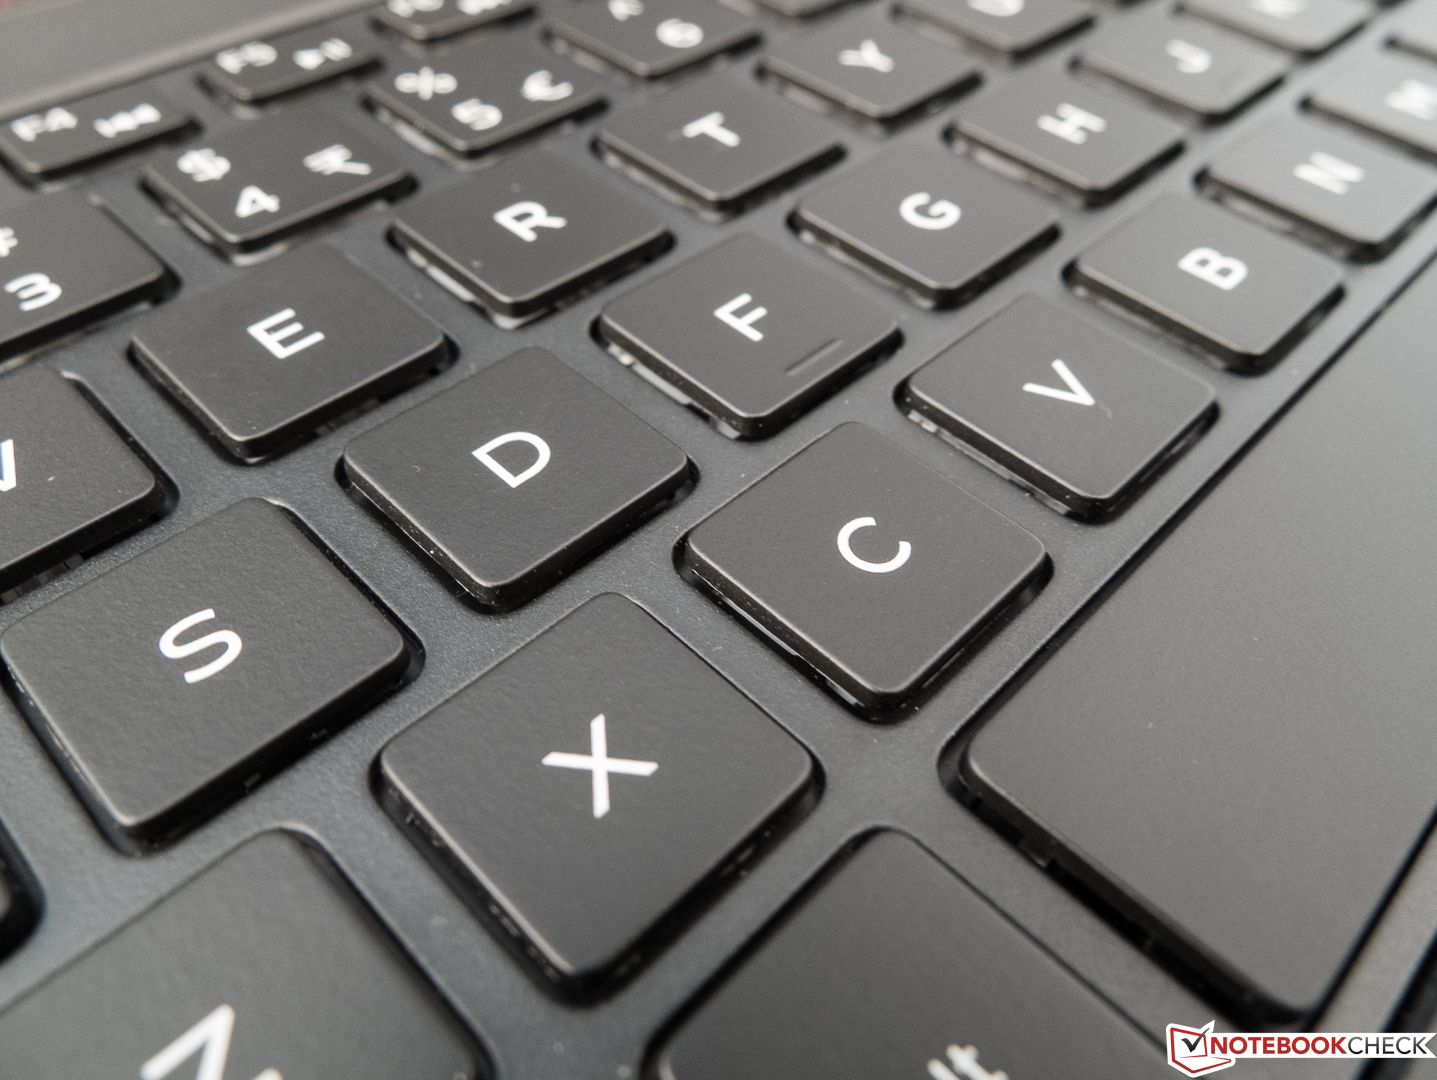 Dell Inspiron 15 7559 Notebook Review - NotebookCheck net